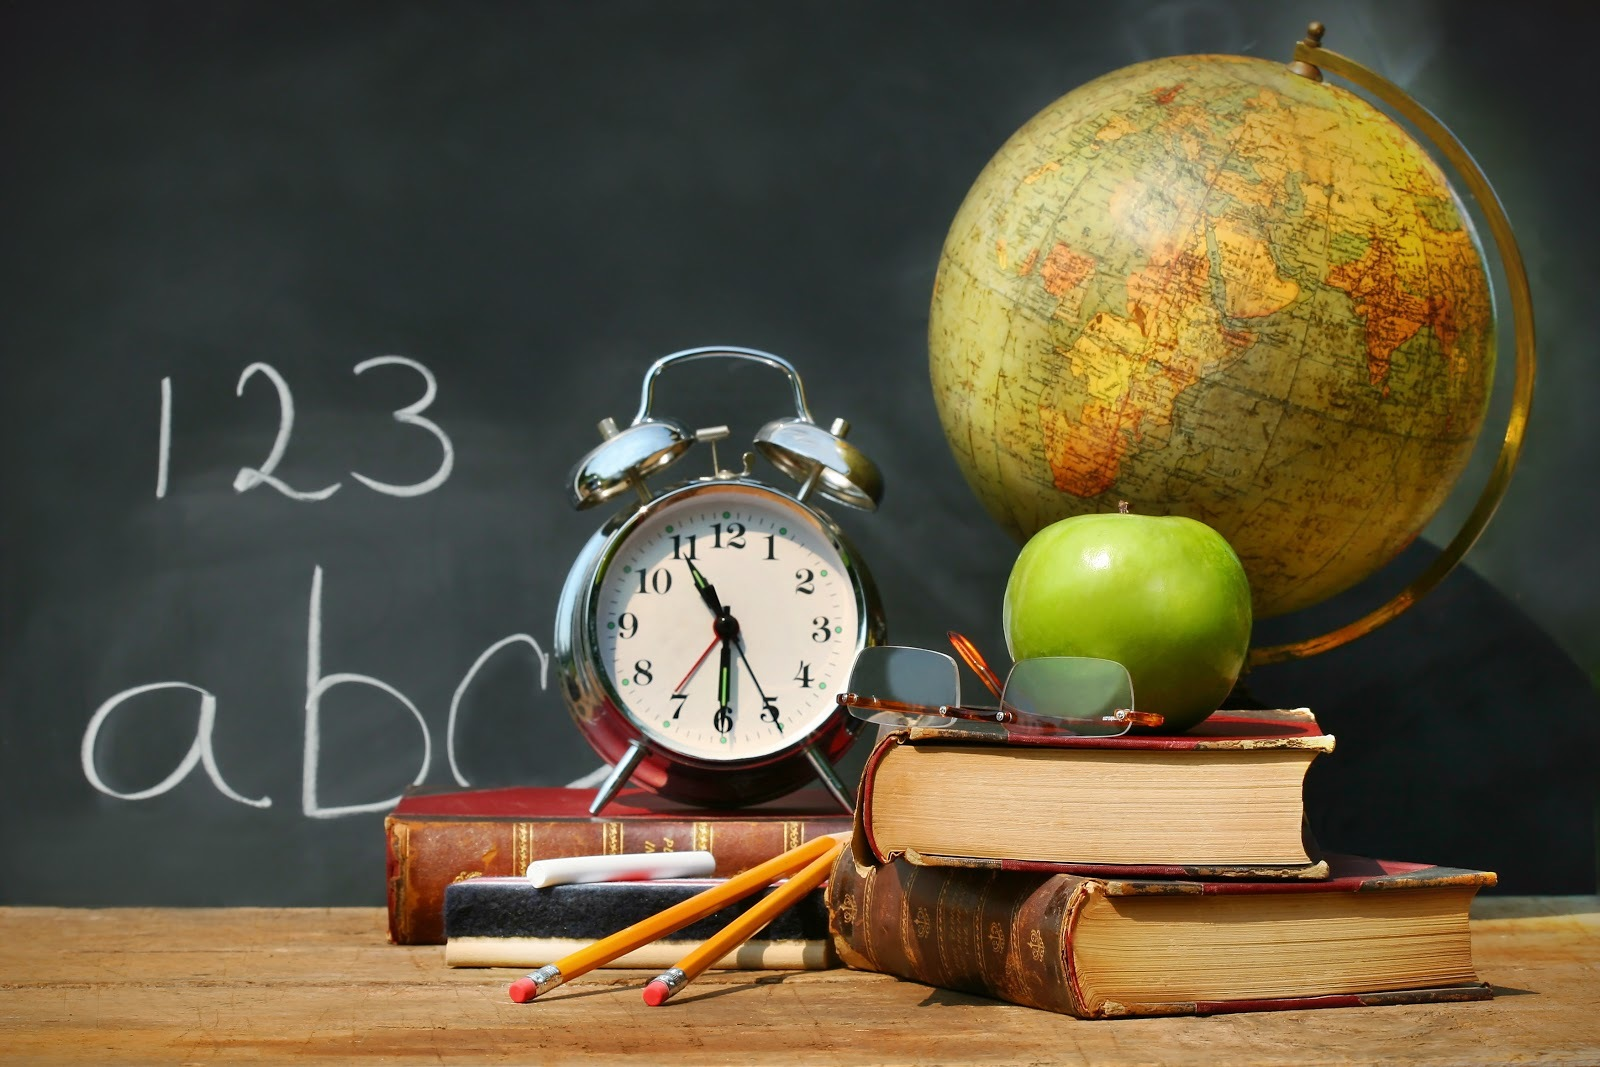 20374 download wallpaper Objects, Books, Clock, Still Life screensavers and pictures for free